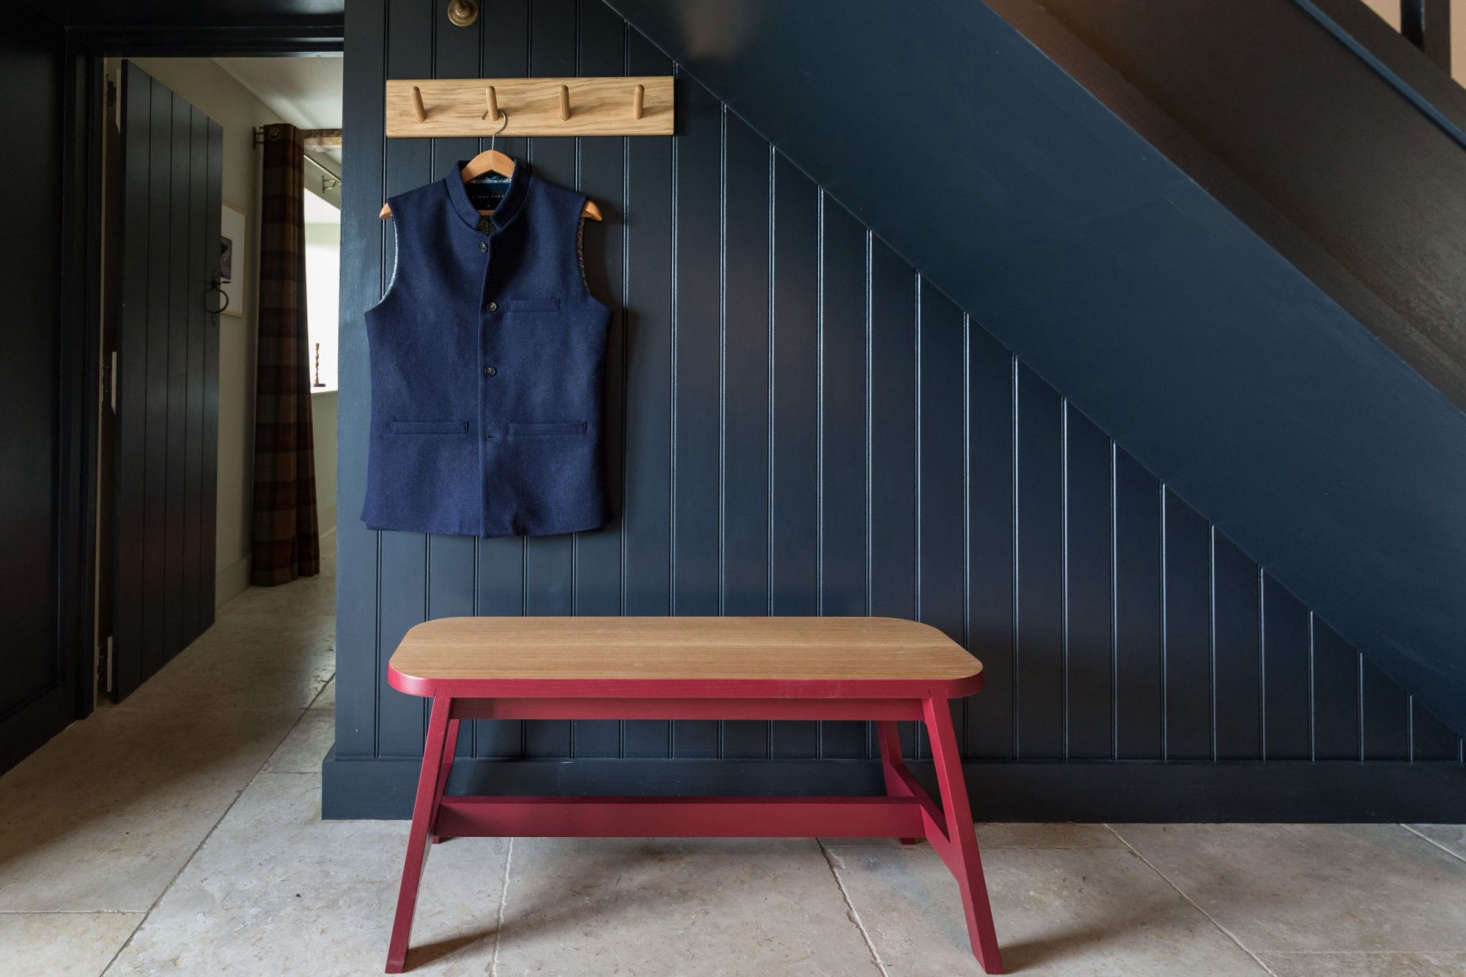 A Peg Rail from Another Country at the The Craftsman's Cottage: A Holiday Rental in England with Furnishings for Purchase in the hamlet of Semley in rural Wiltshire.